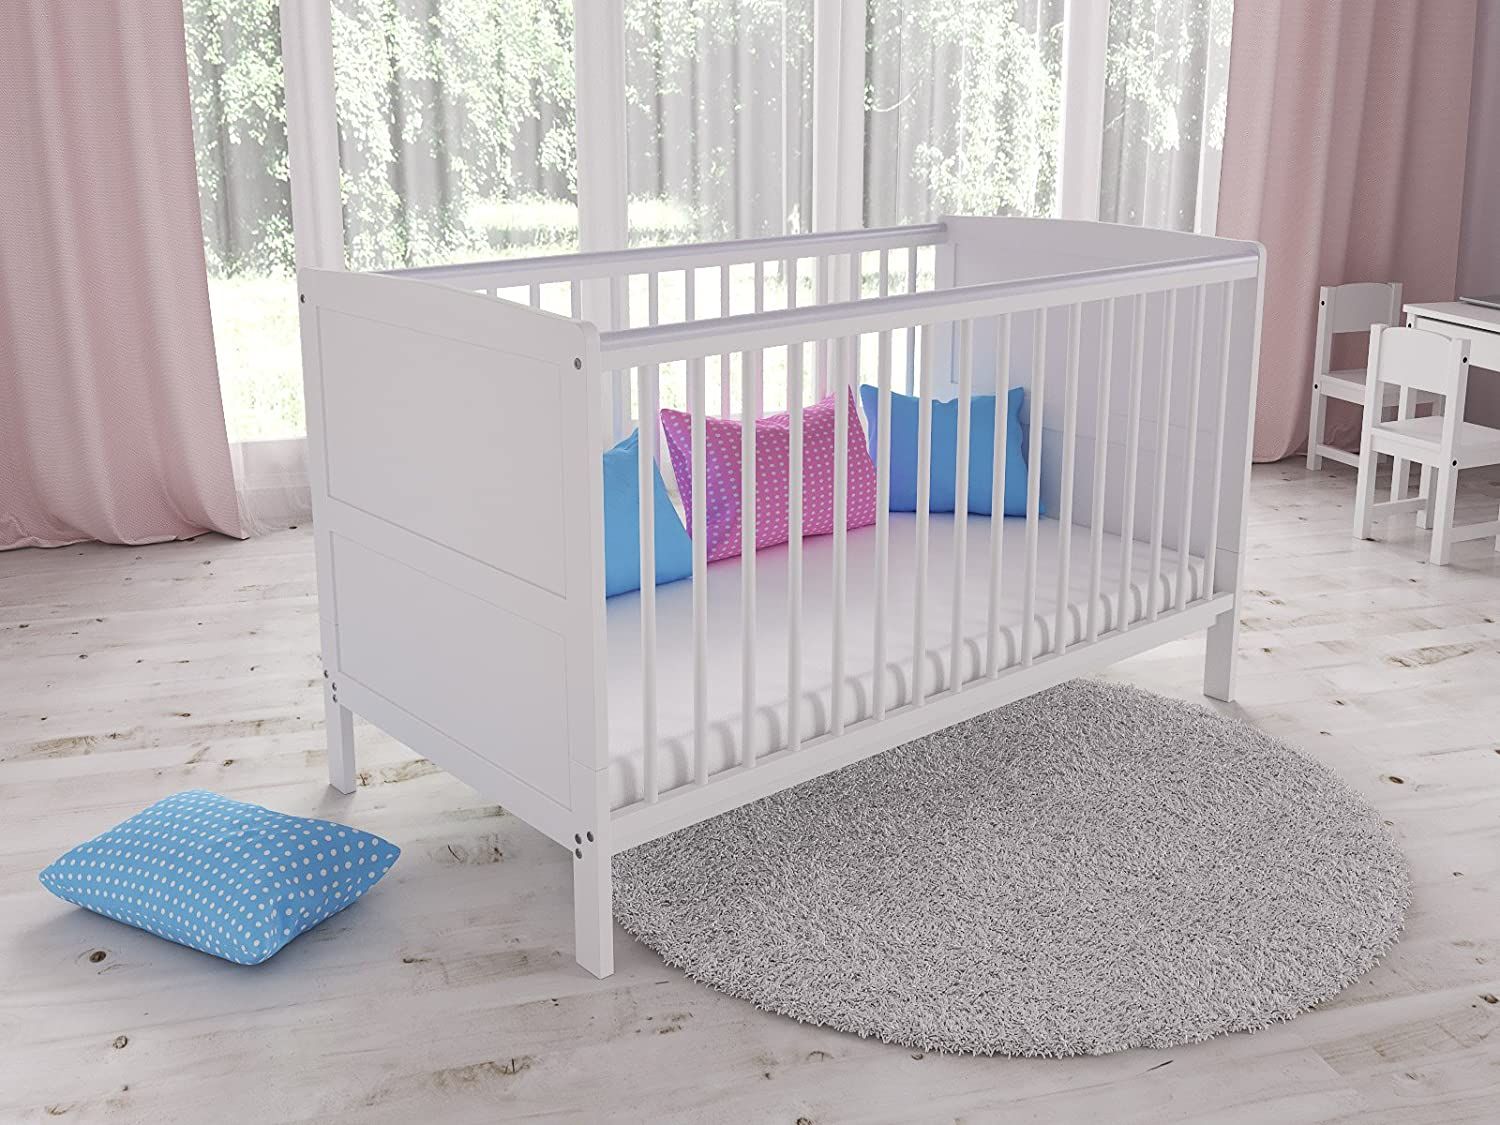 Convertible White Wooden Baby Cot Bed + Foam Mattress with Antibacterial Aloe Vera Cover Love For Sleep